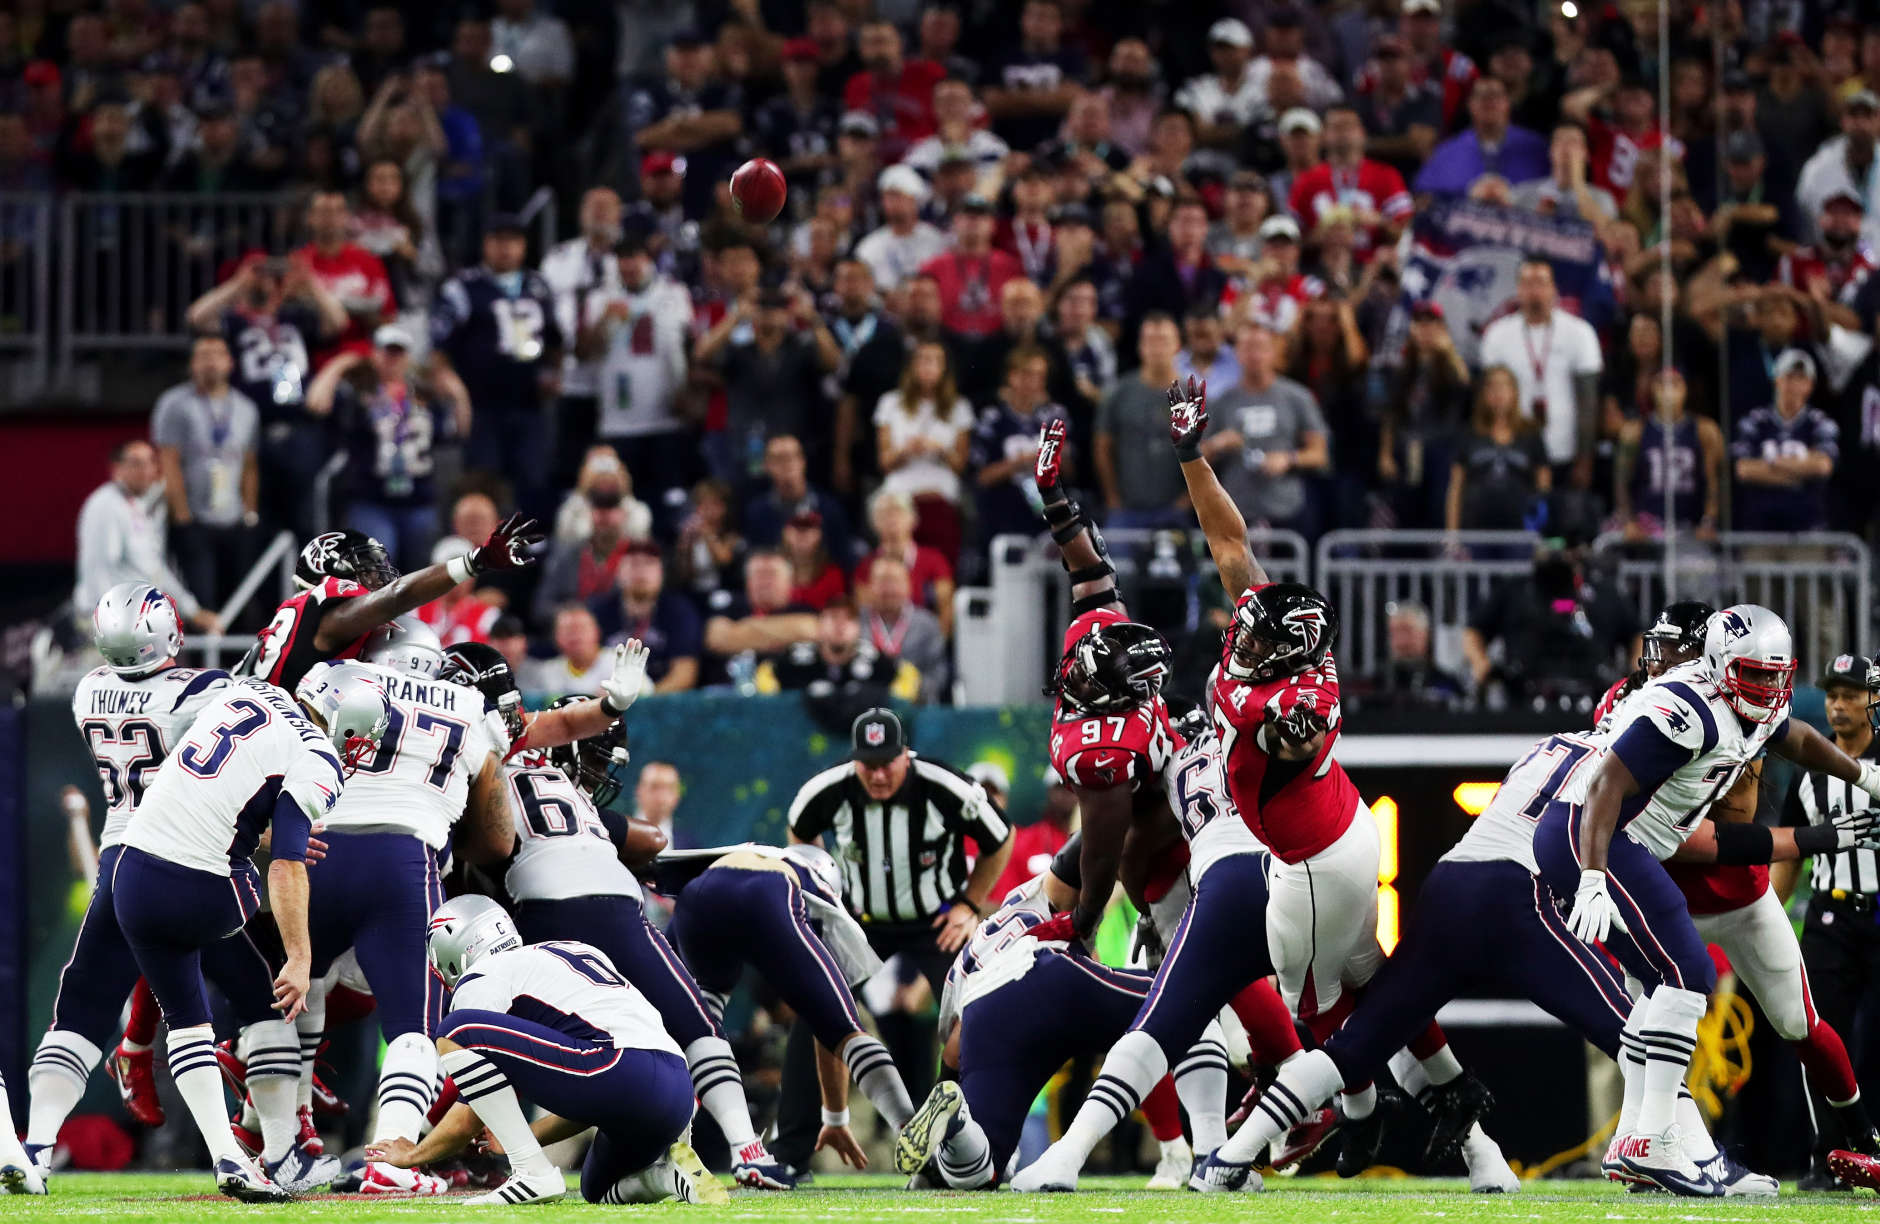 HOUSTON, TX - FEBRUARY 05:  Stephen Gostkowski #3 of the New England Patriots kicks a 41 yard field goald in the second quarter during Super Bowl 51 at NRG Stadium on February 5, 2017 in Houston, Texas.  (Photo by Tom Pennington/Getty Images)